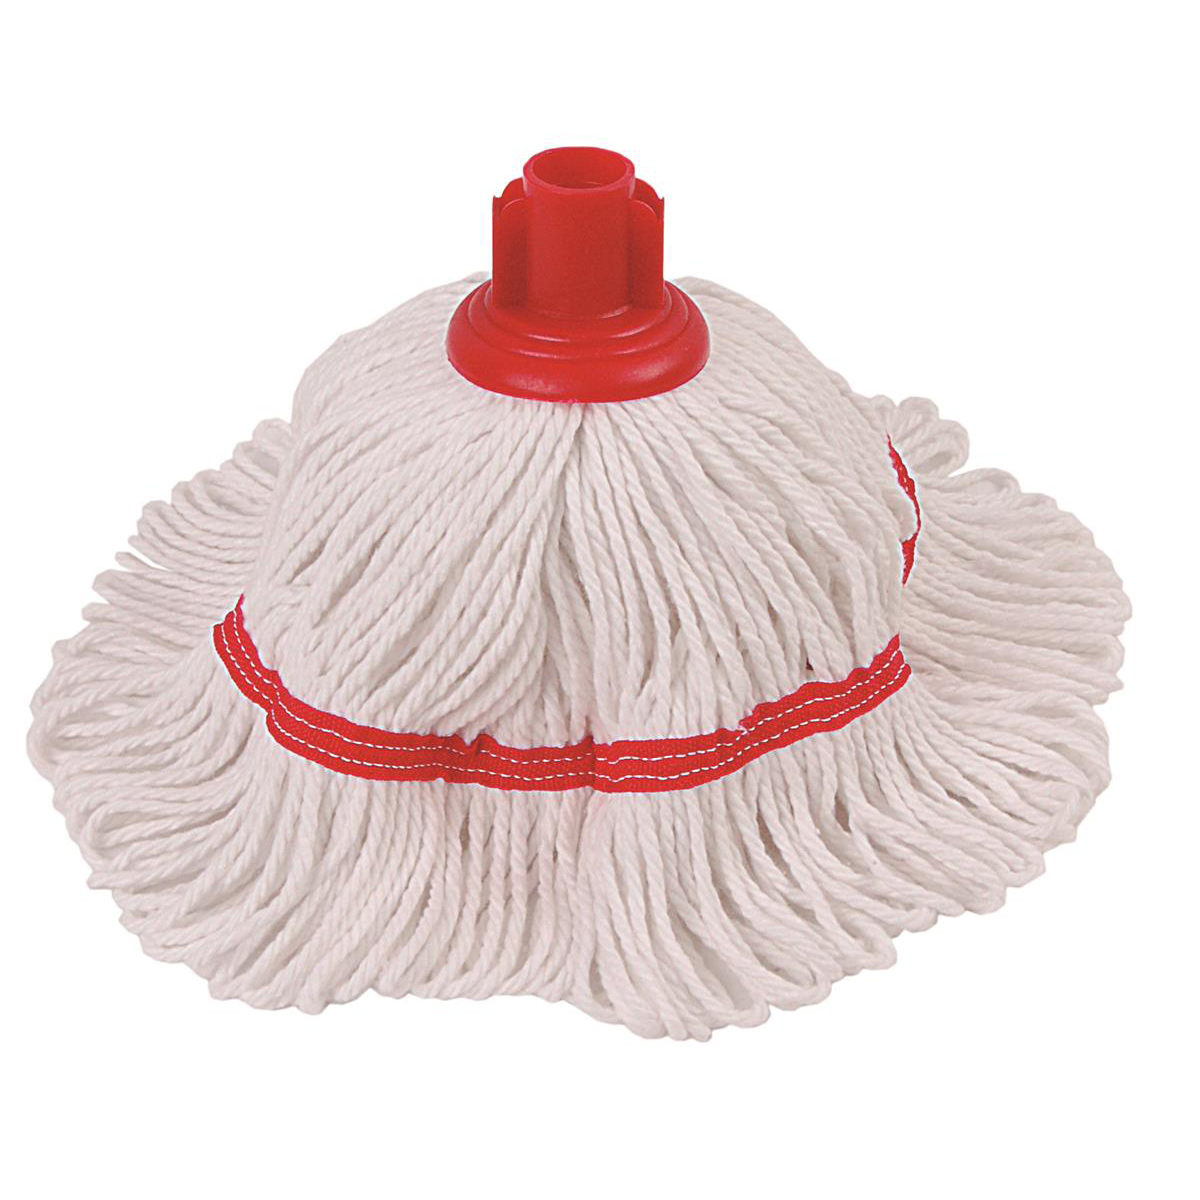 Hygemix T1 Red Socket Mop Head 200gm